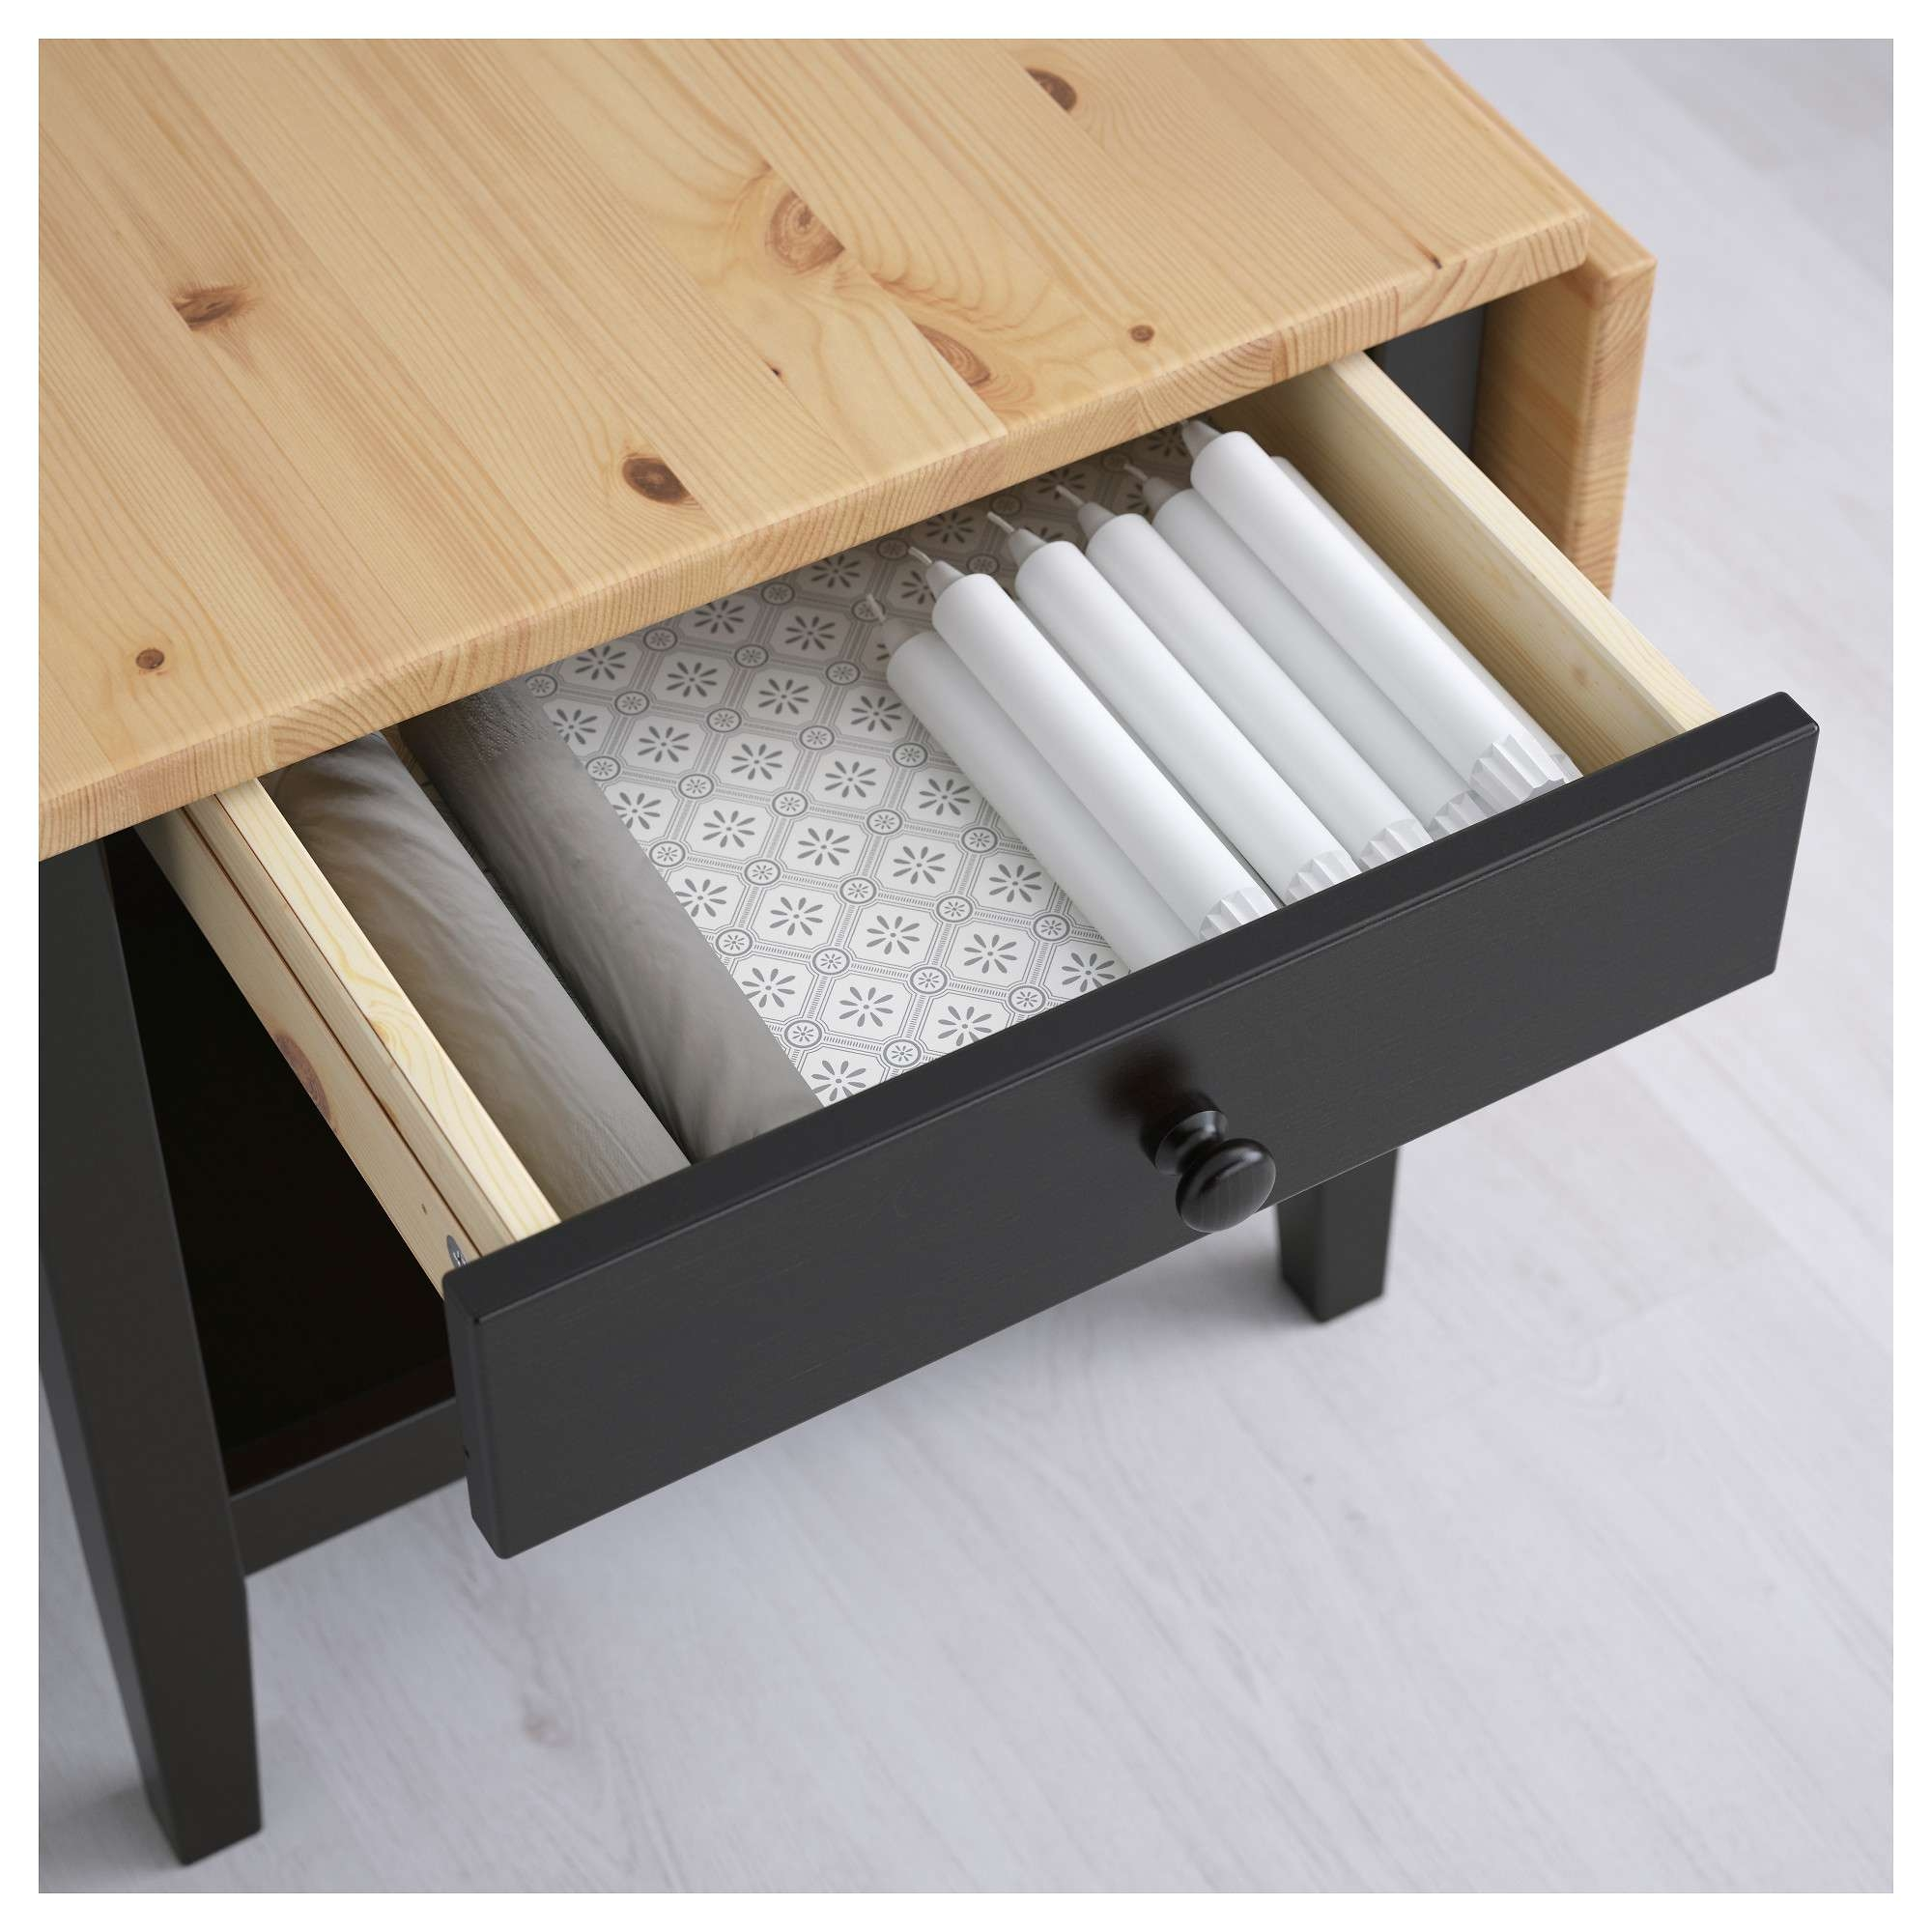 Arkelstorp Coffee Table Black 65X140X52 Cm – Ikea Within Most Up To Date Coffee Tables Solid Wood (Gallery 15 of 20)